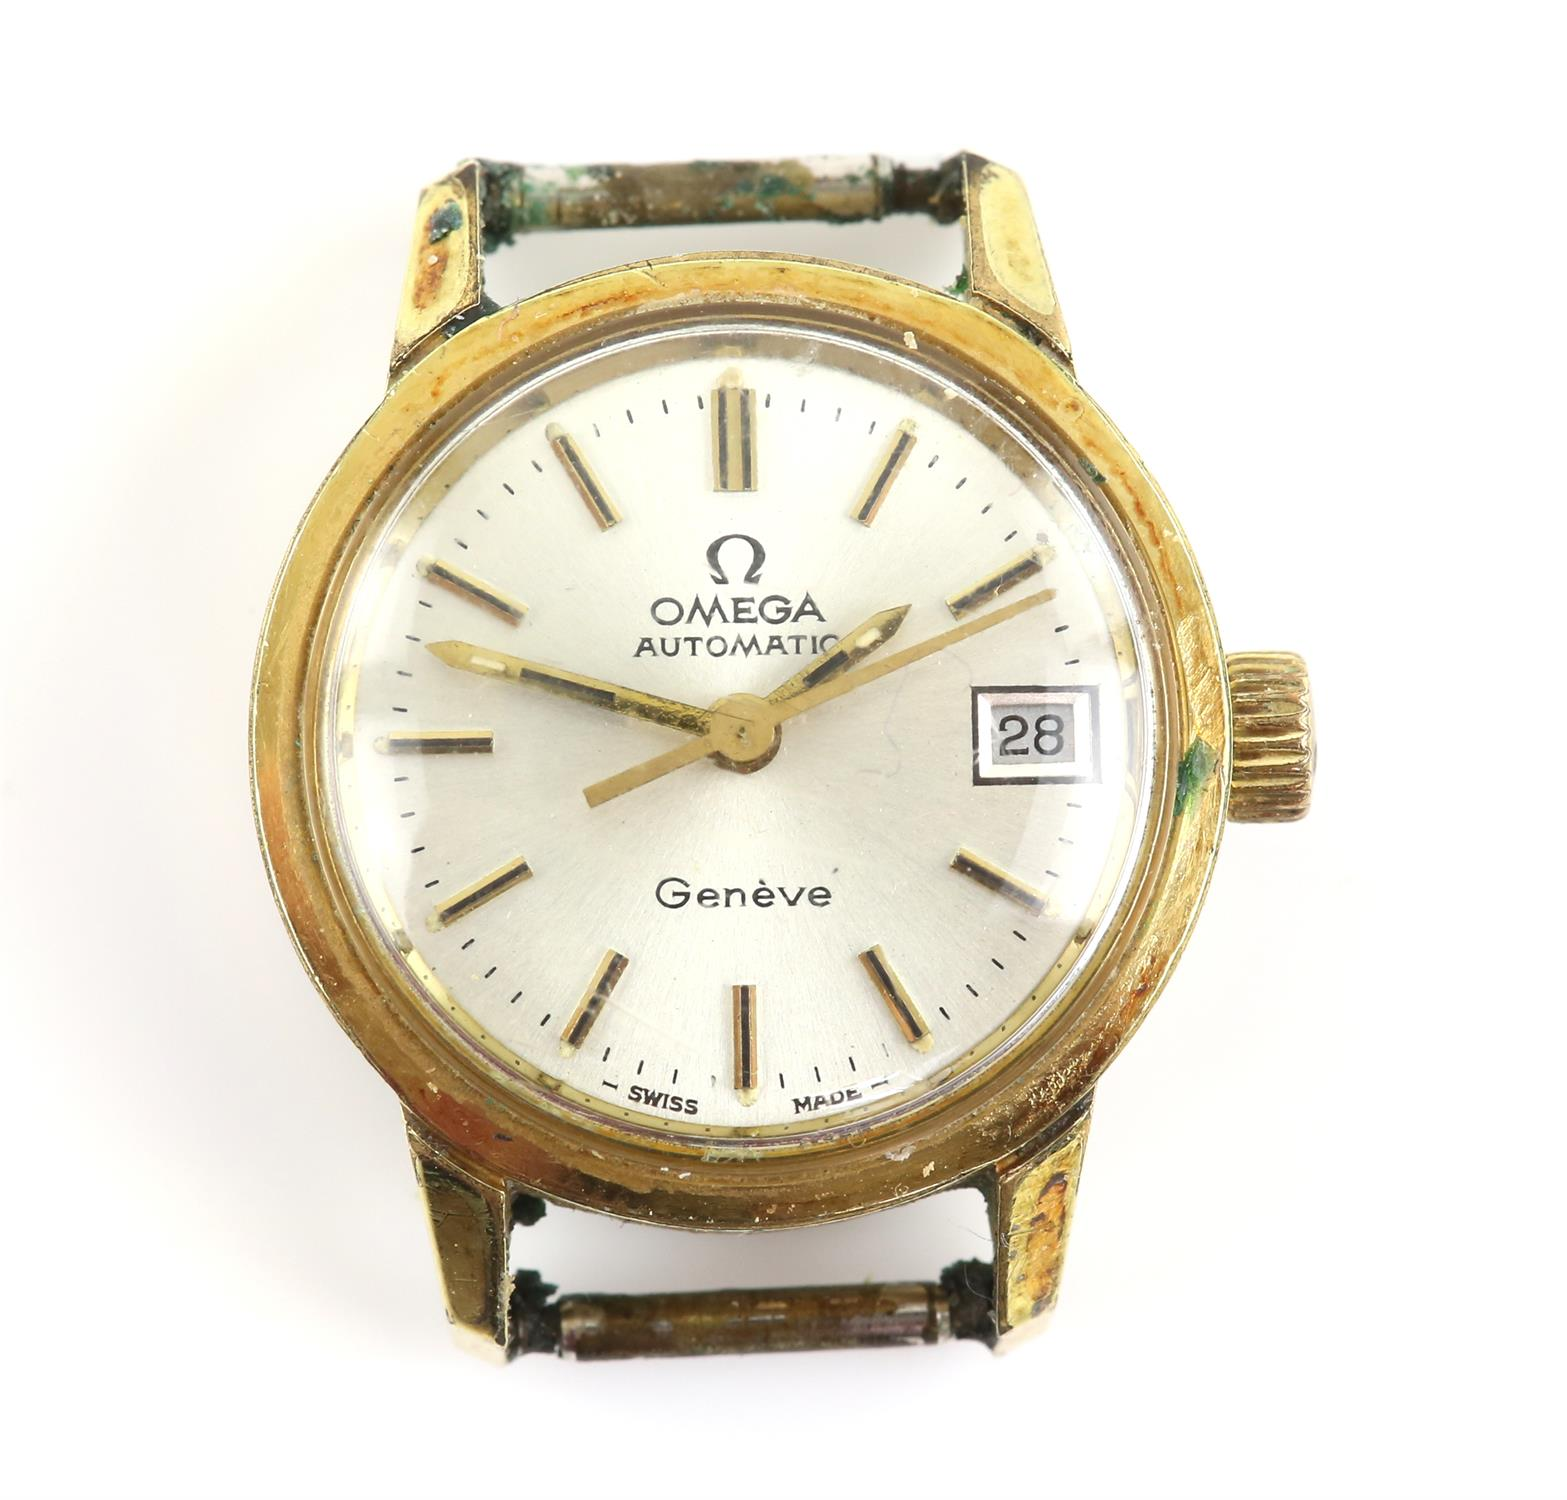 AMENDED DESCRIPTION Omega Geneve, a Ladies gold plated wristwatch the signed silvered dial with